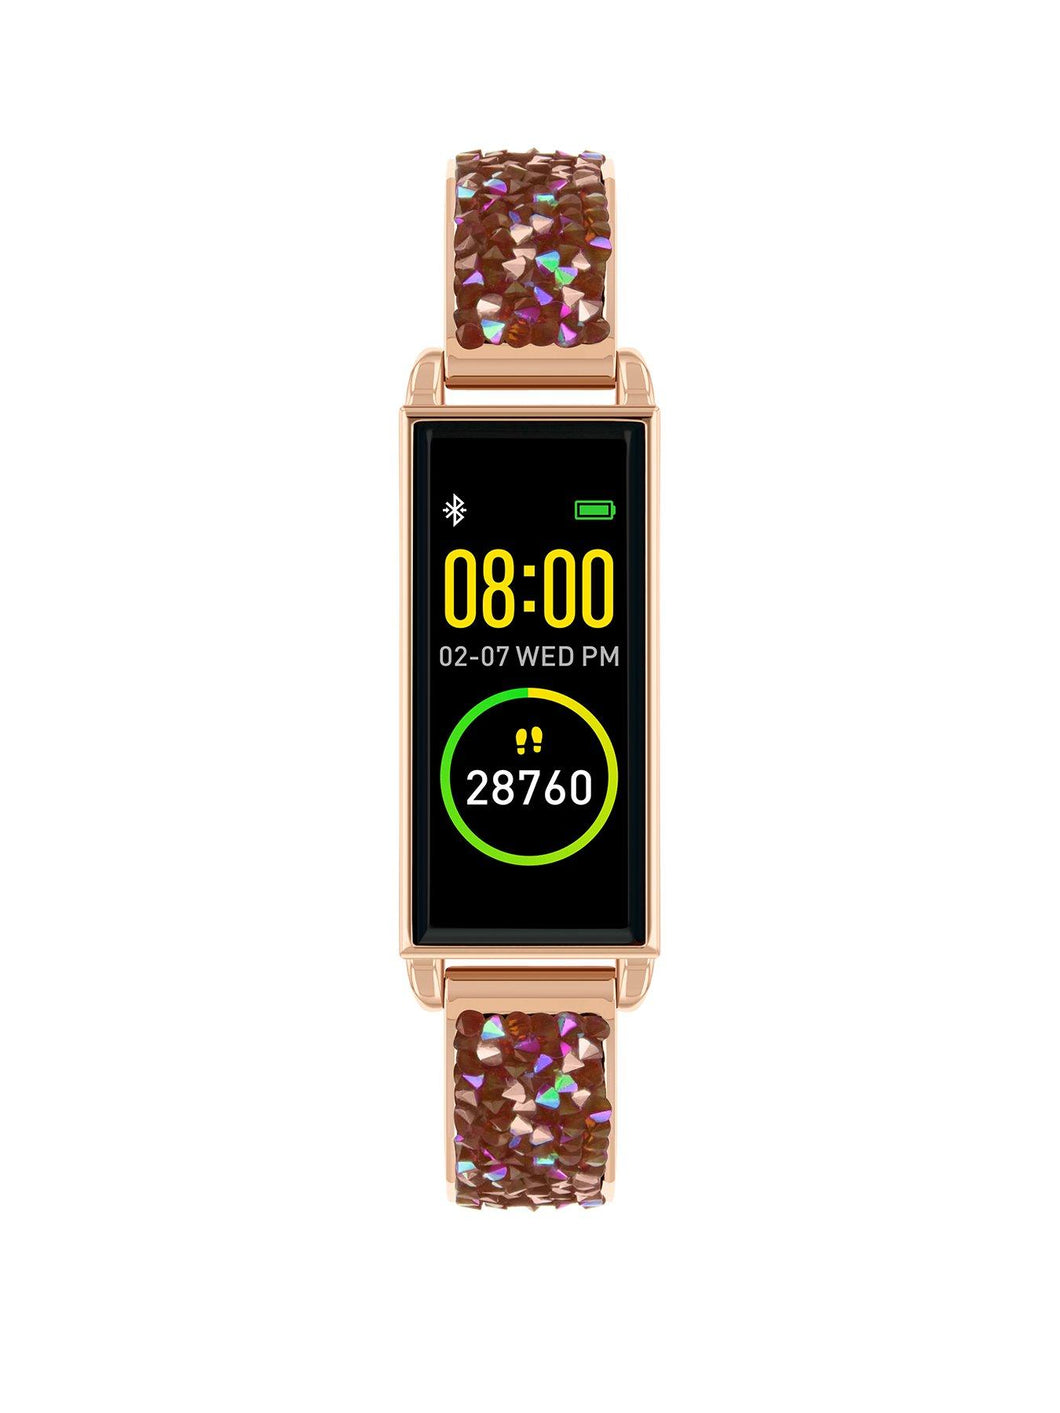 Reflex Active Series 2 Smart Watch with Colour Touch Screen.